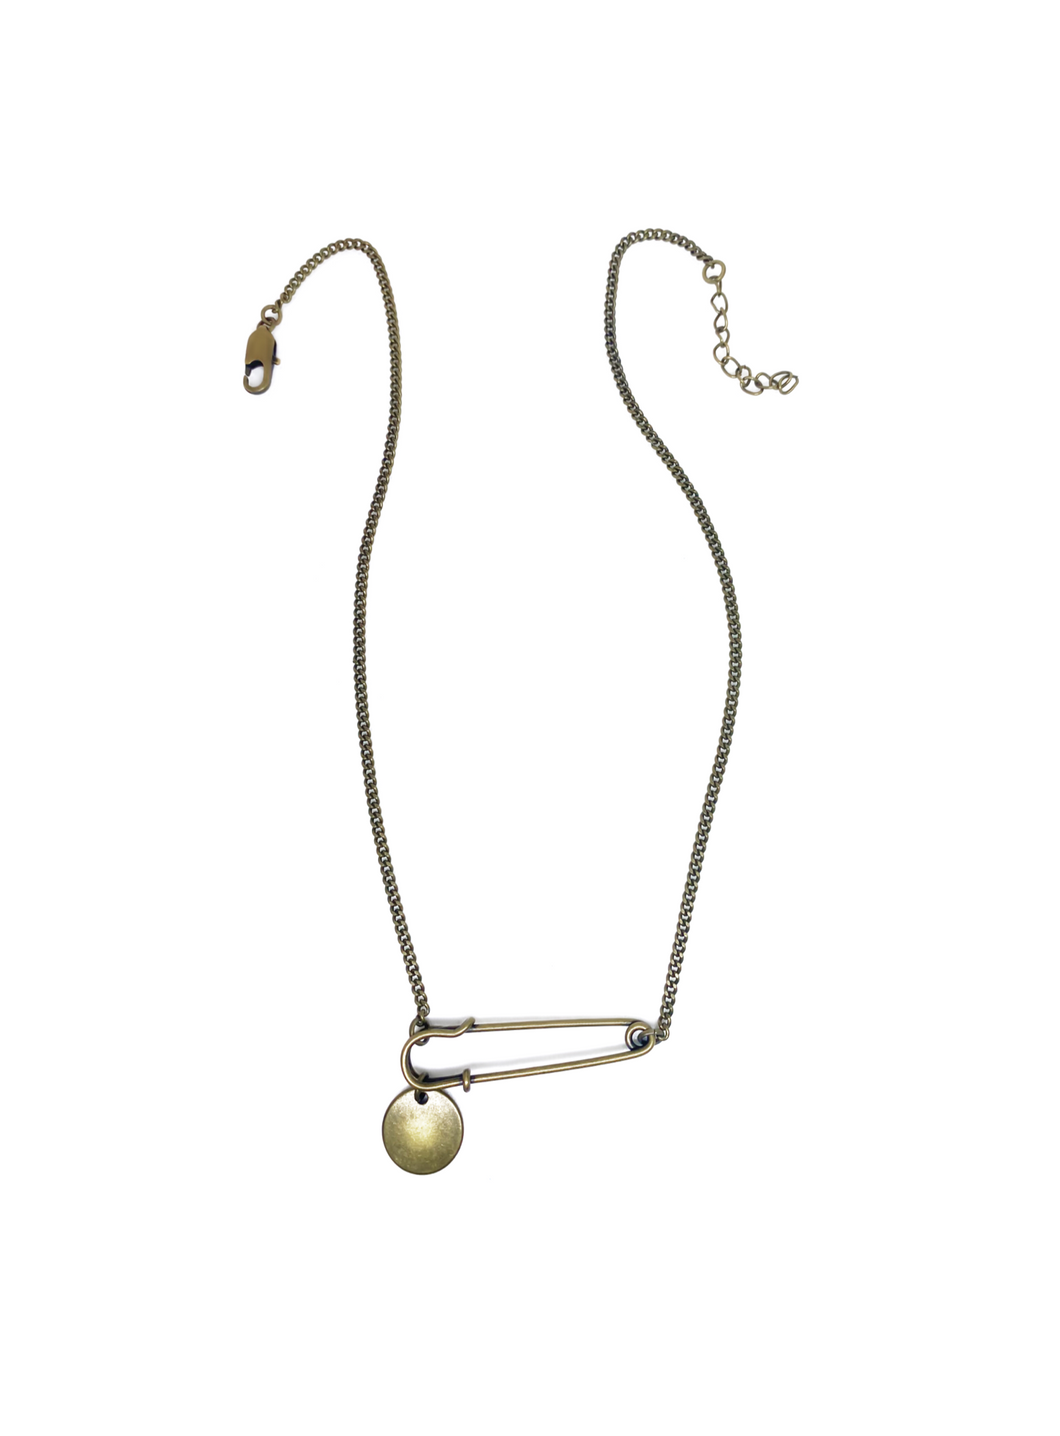 Gold safety pin charm necklace for women.